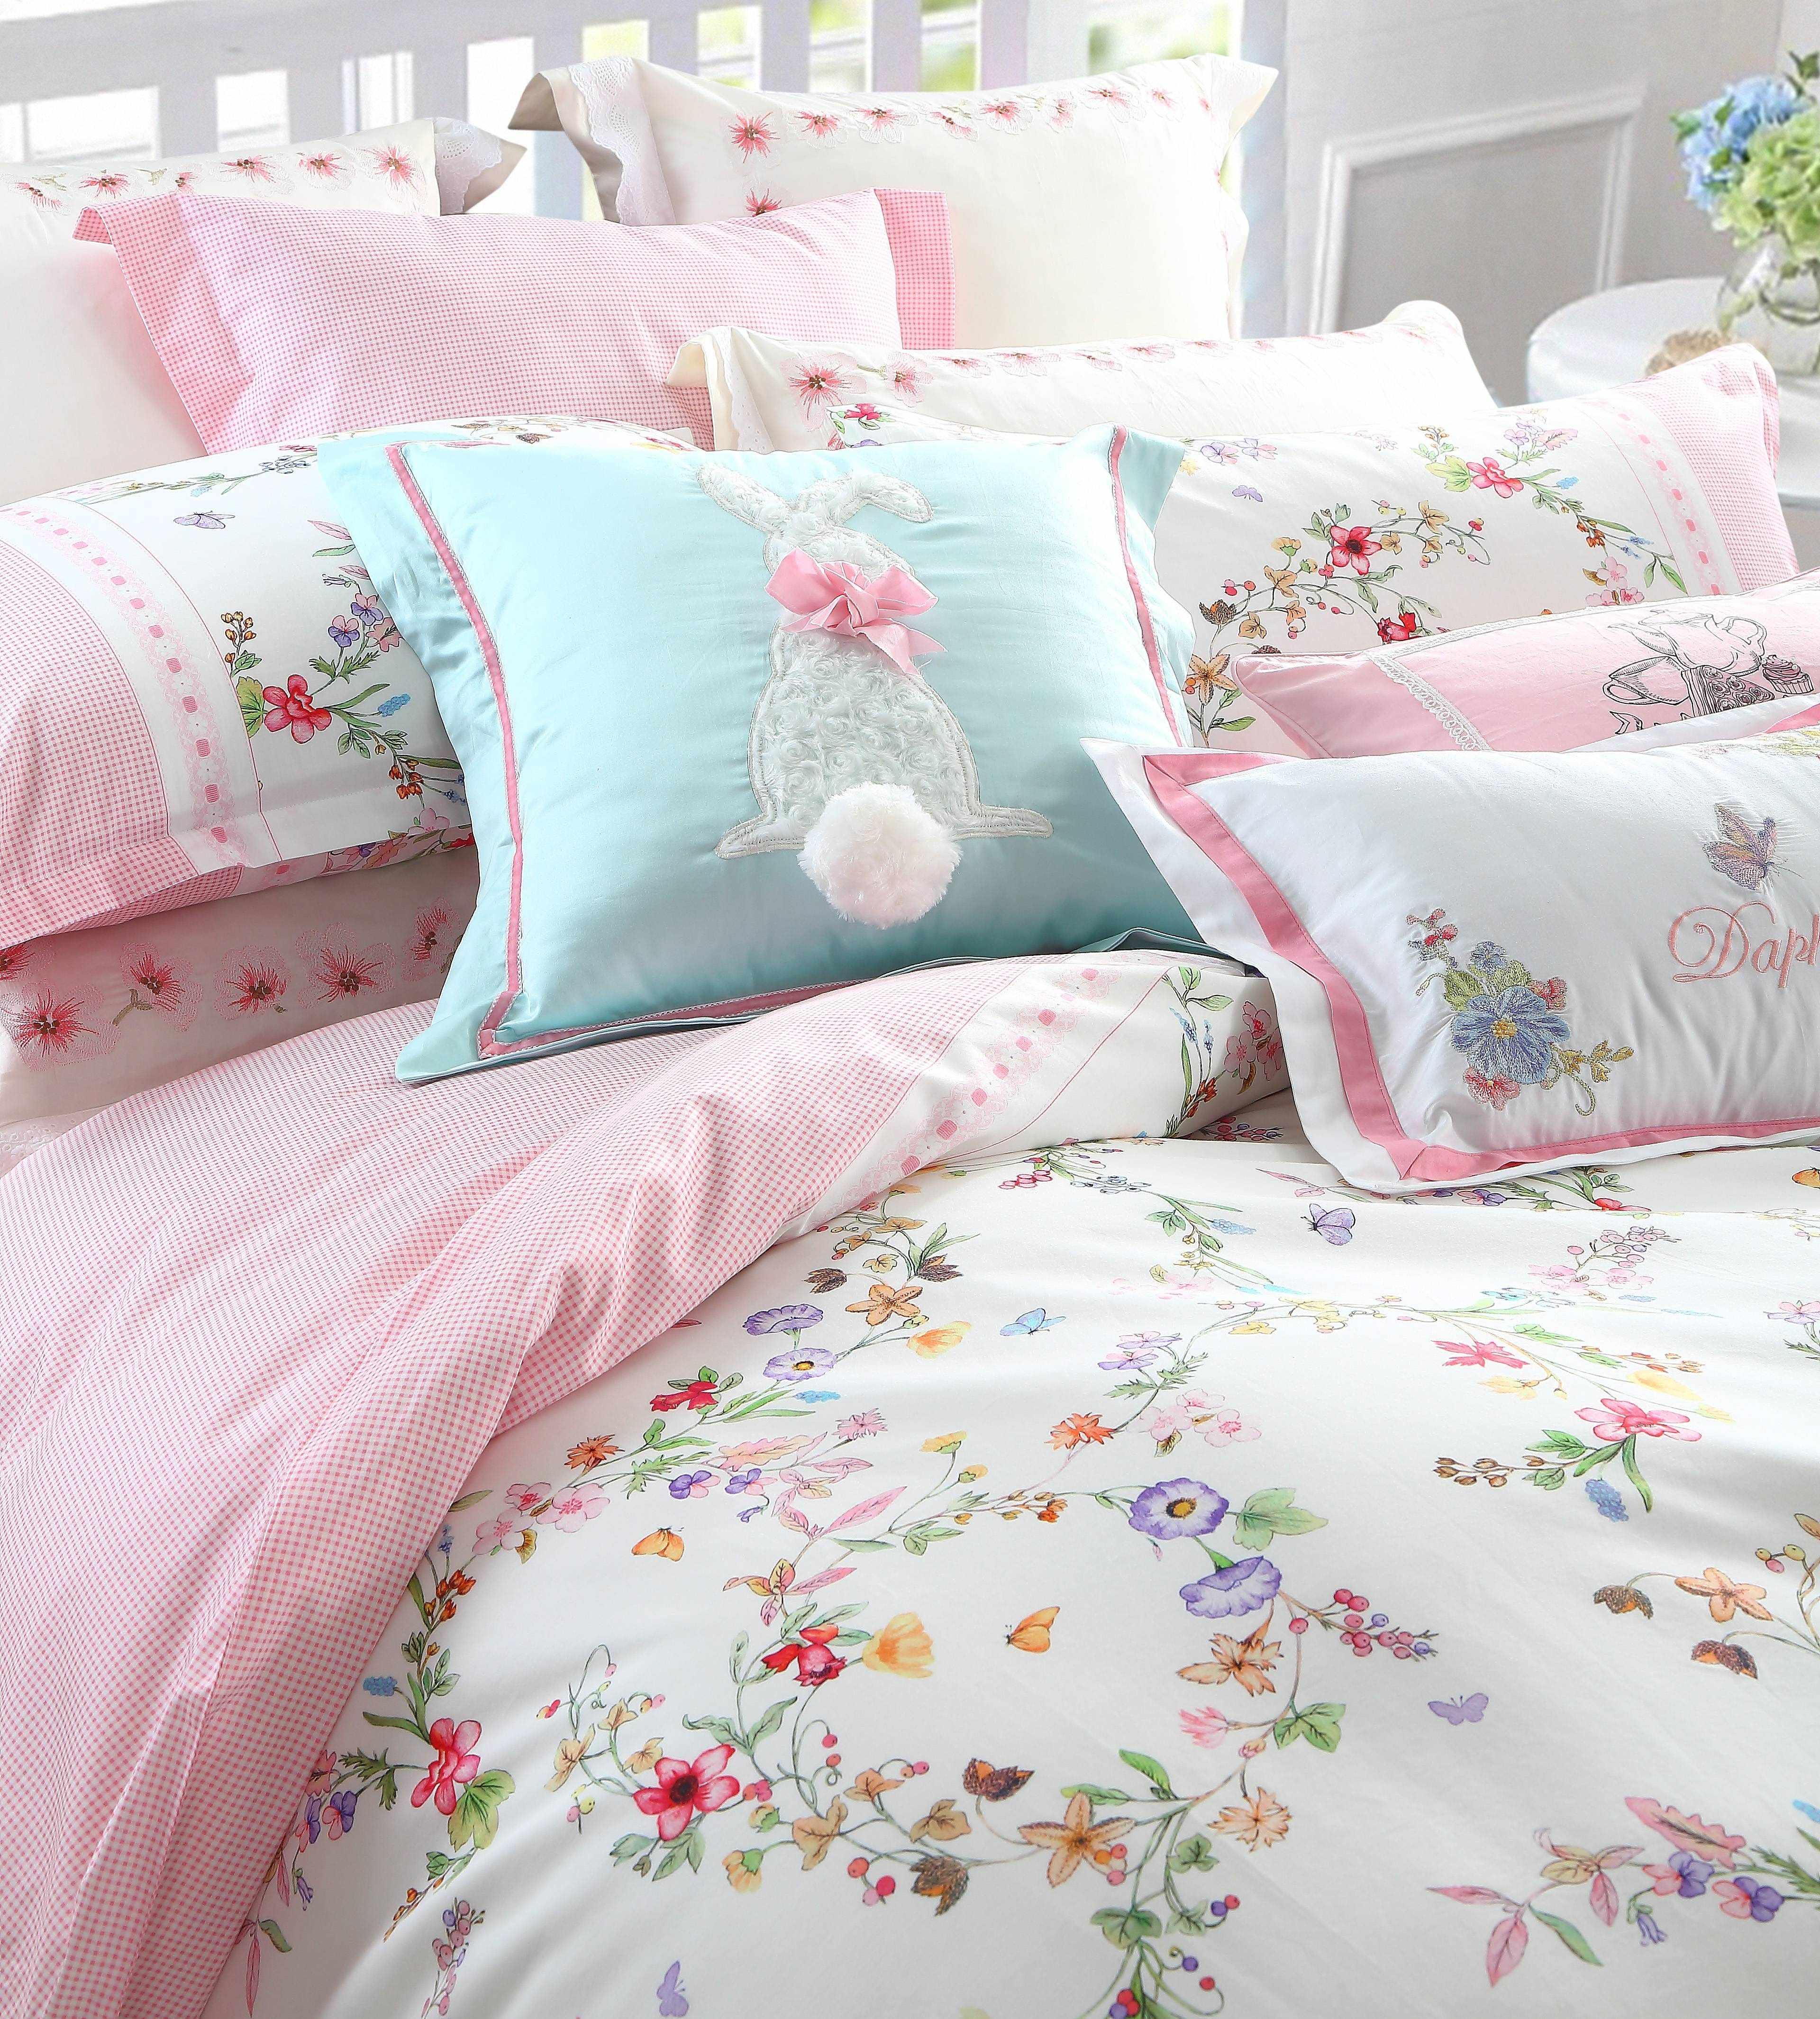 Daphne 100% Cotton Adorable Printed Bed linen #6885 100% Cotton Printed image30